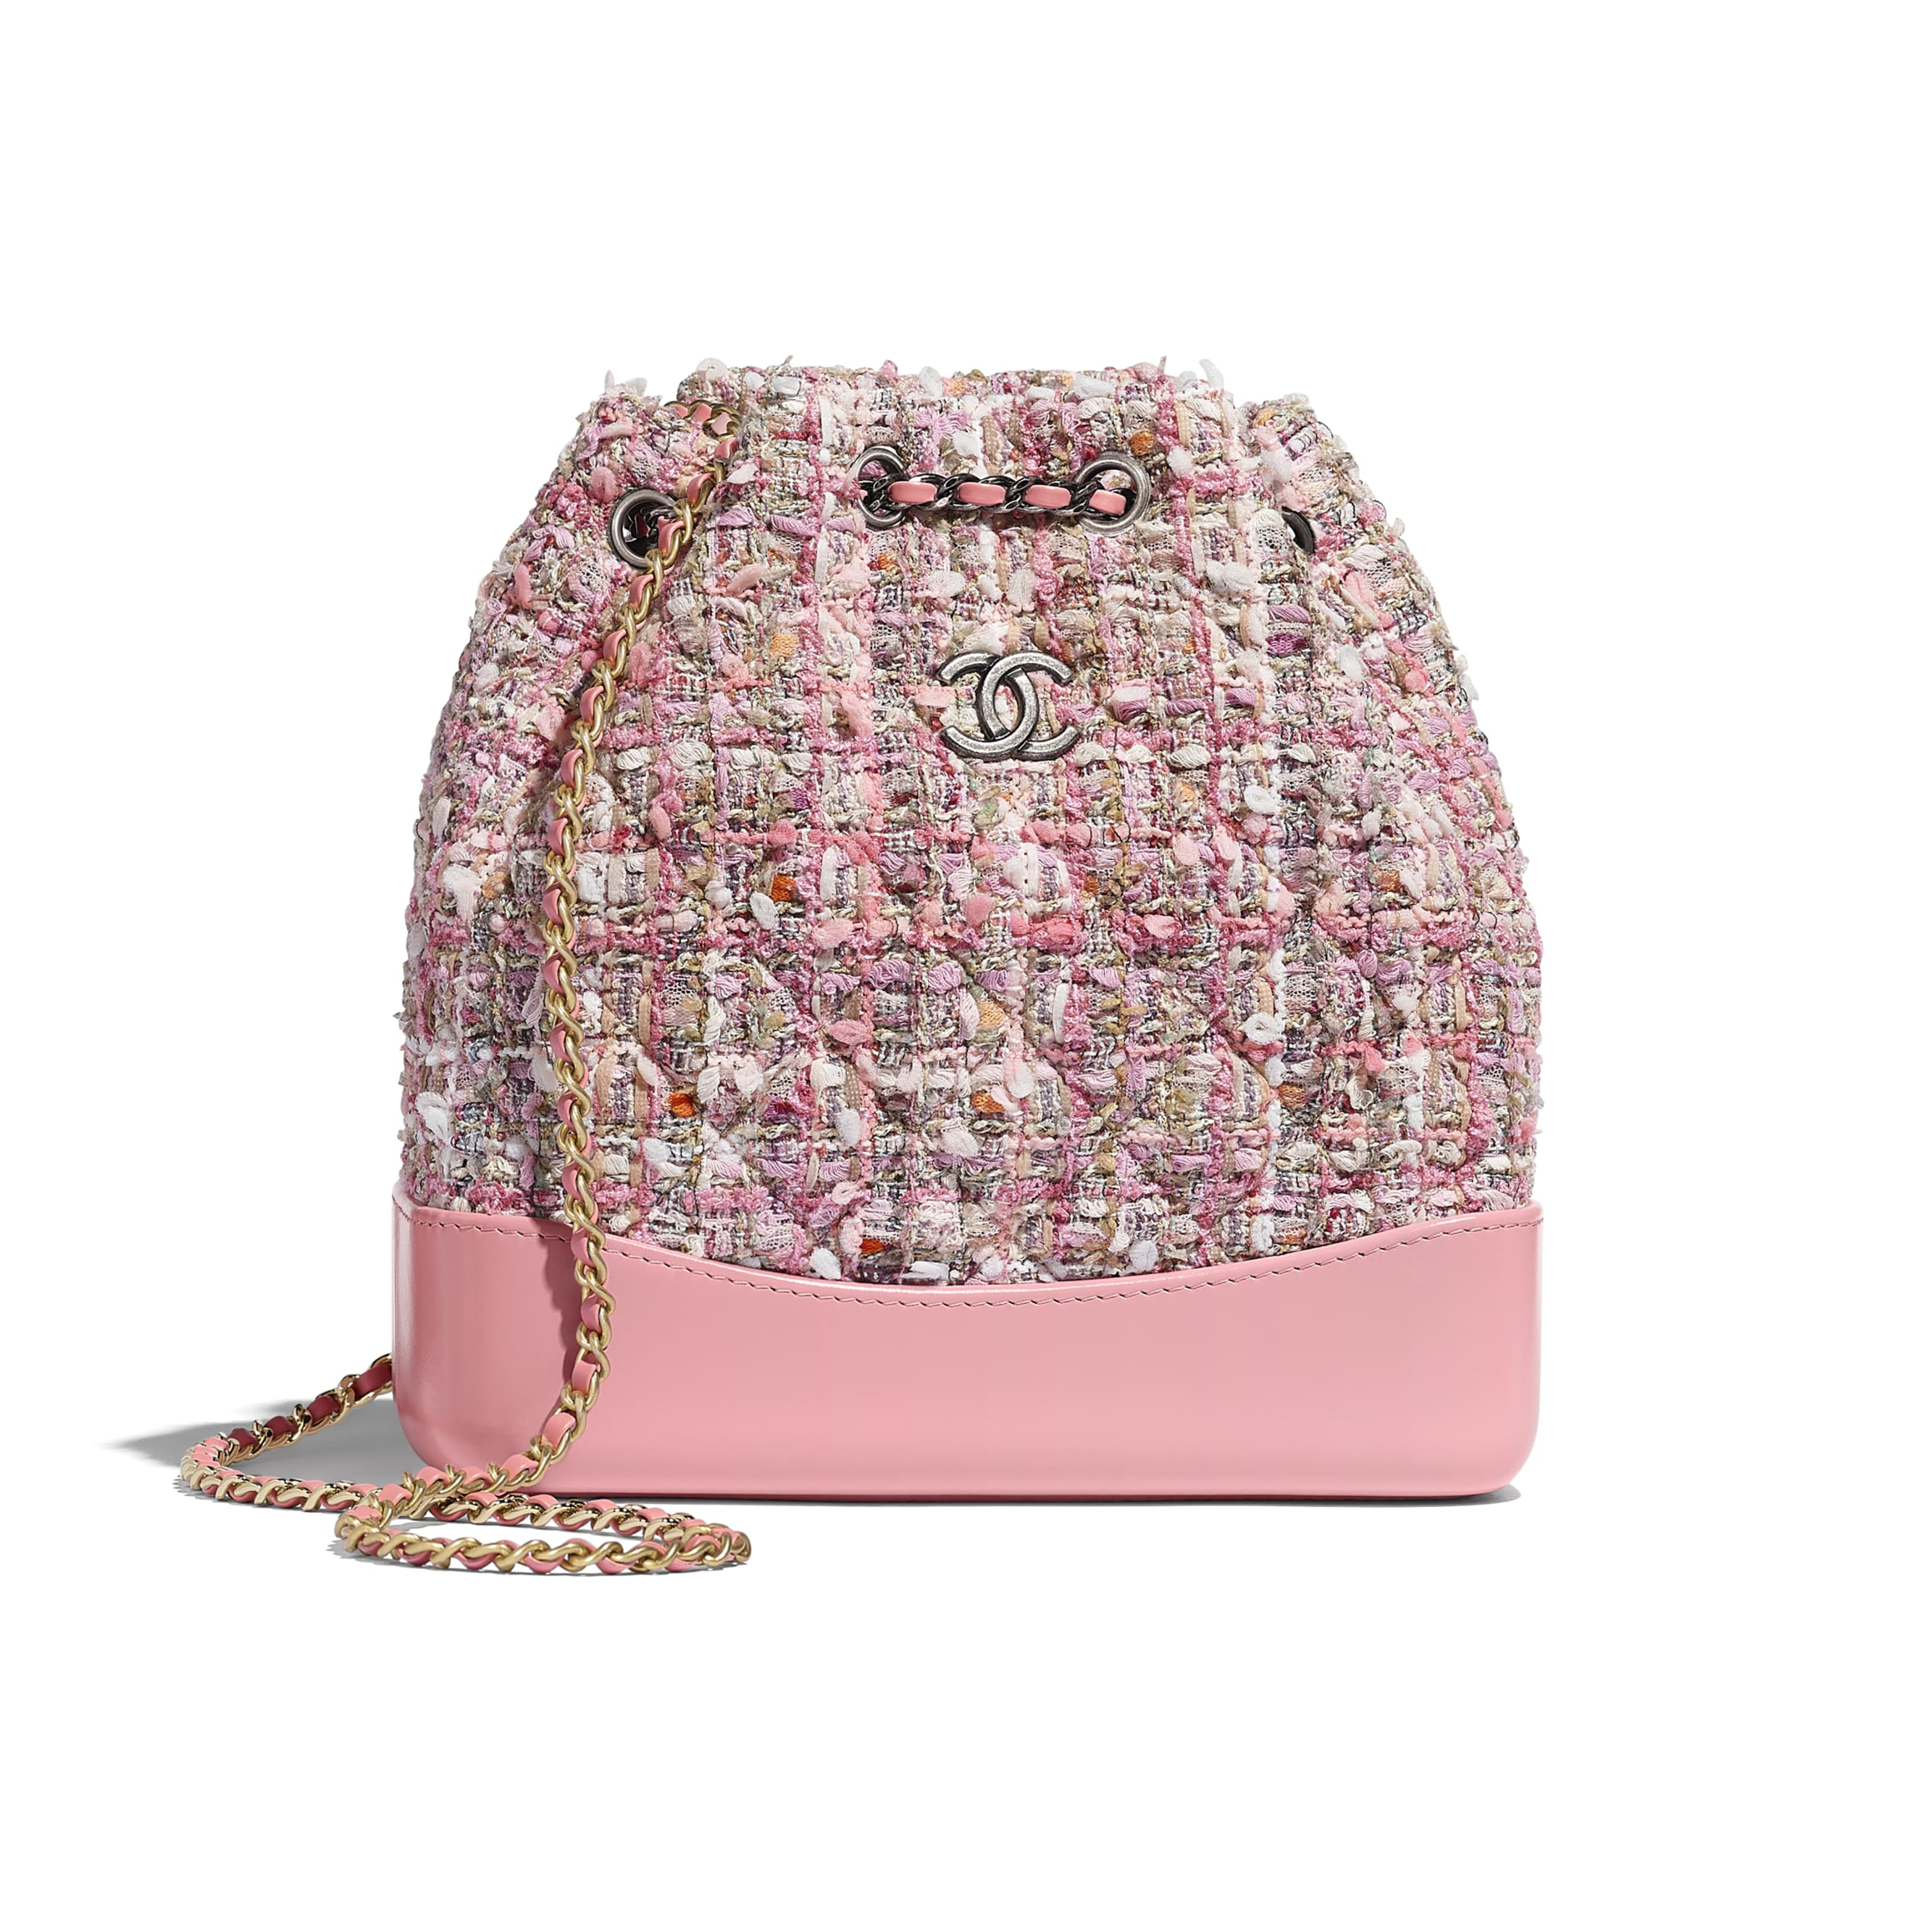 CHANEL'S GABRIELLE Small Backpack - Pink, Beige, Orange & Ecru - Tweed, Shiny Calfskin & Gold-Tone & Silver-Tone Metal - Default view - see standard sized version